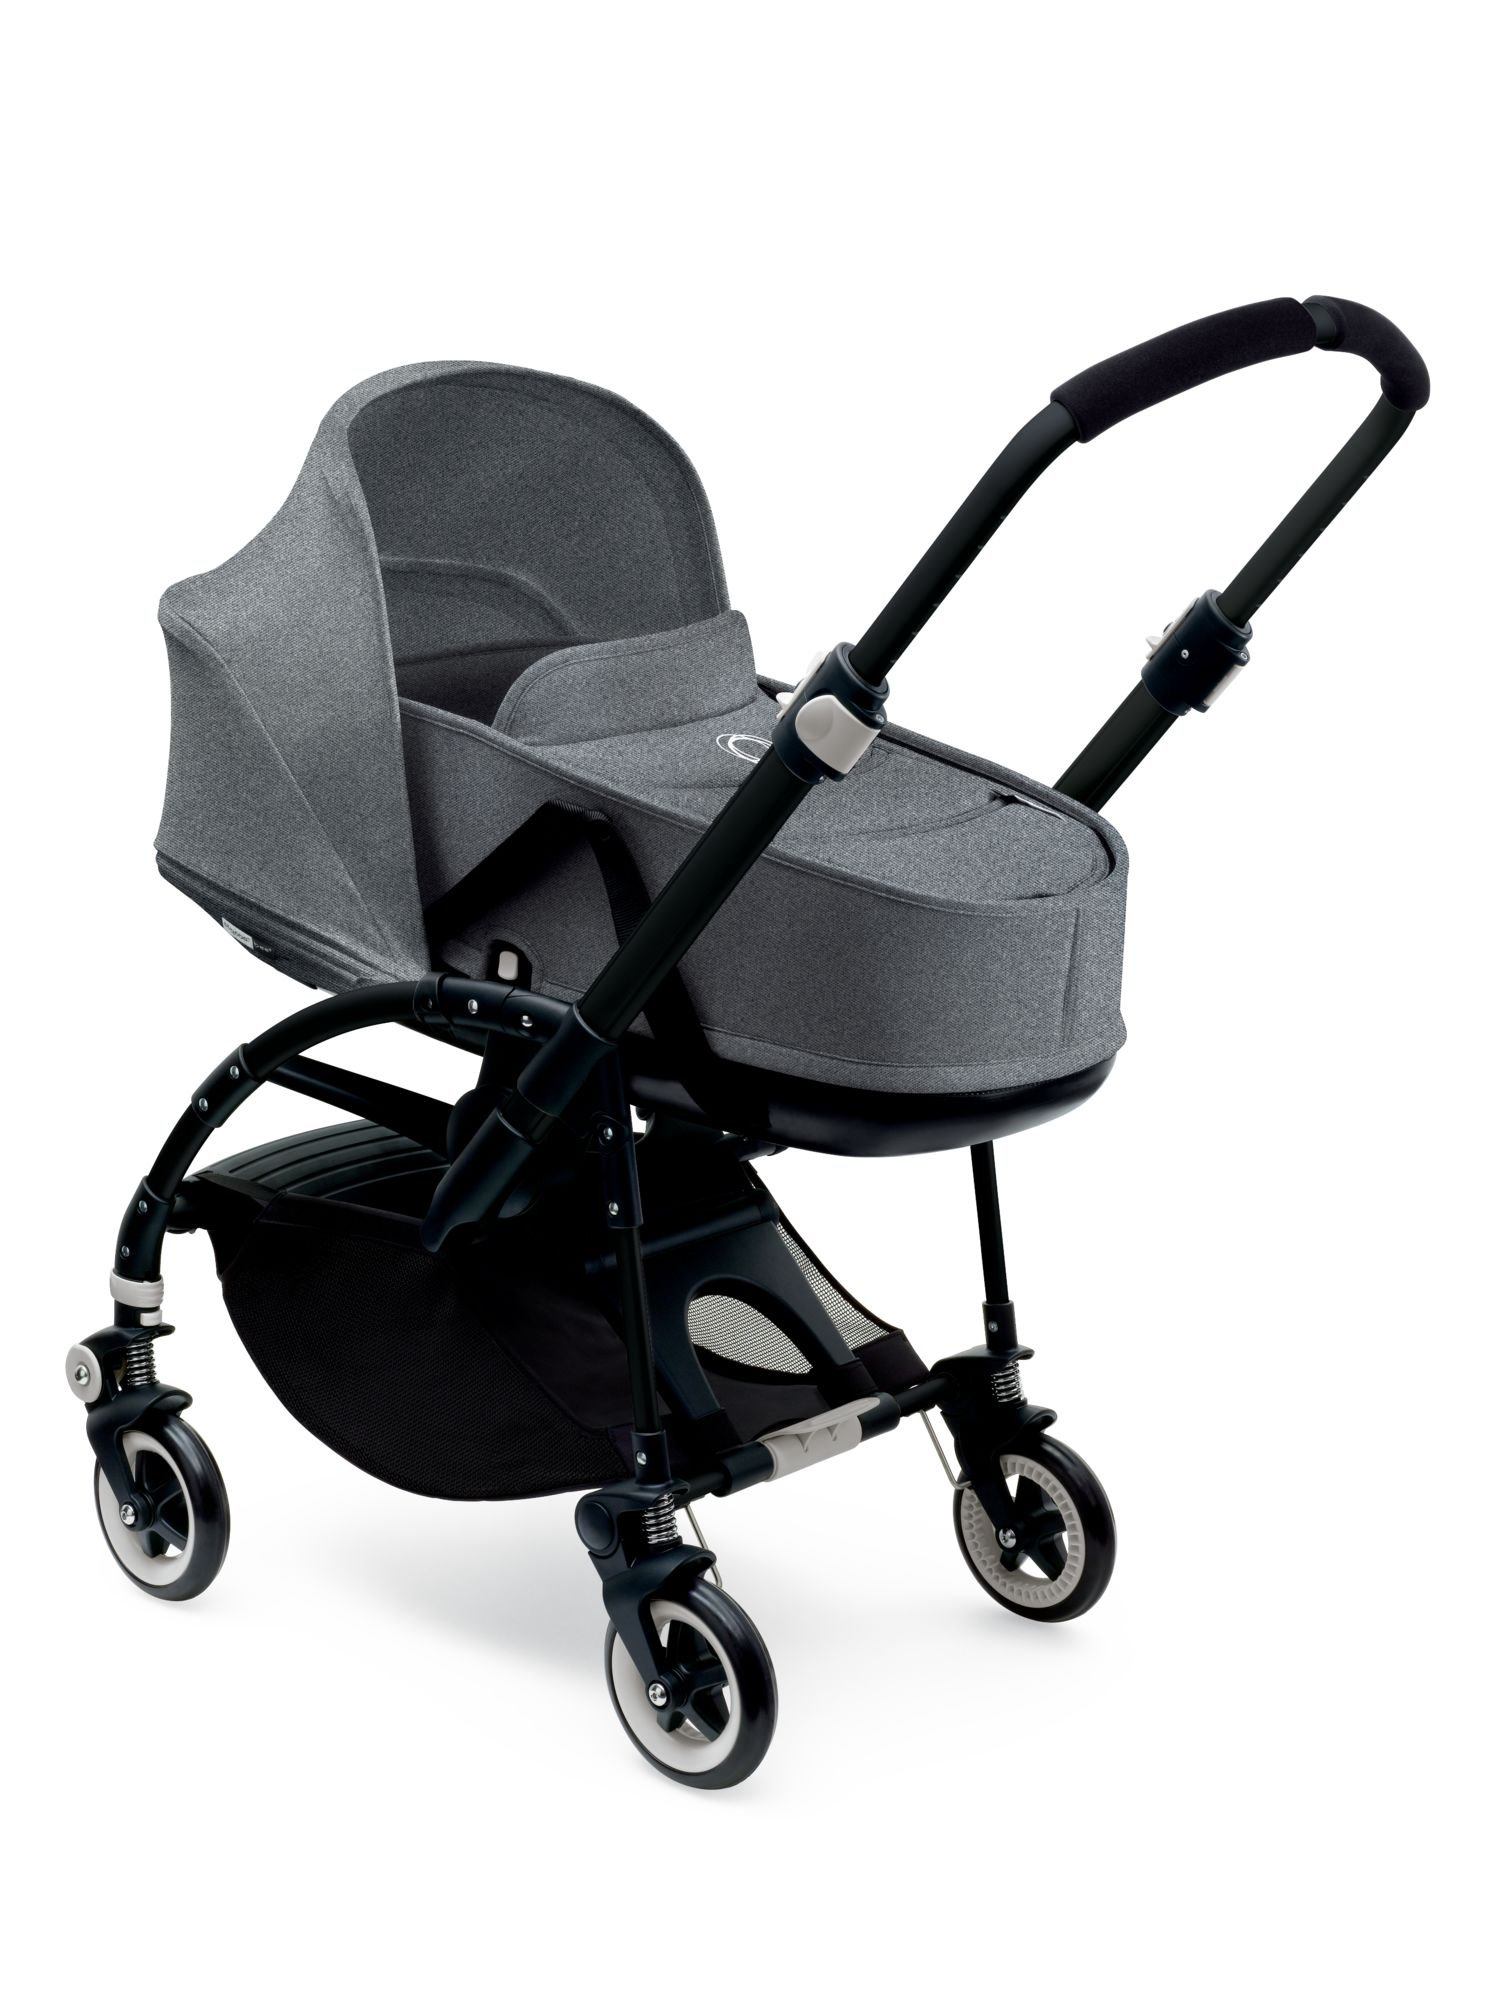 Bugaboo Bee3 Bassinet Tailored Fabric, Grey Melange by Bugaboo (Image #4)